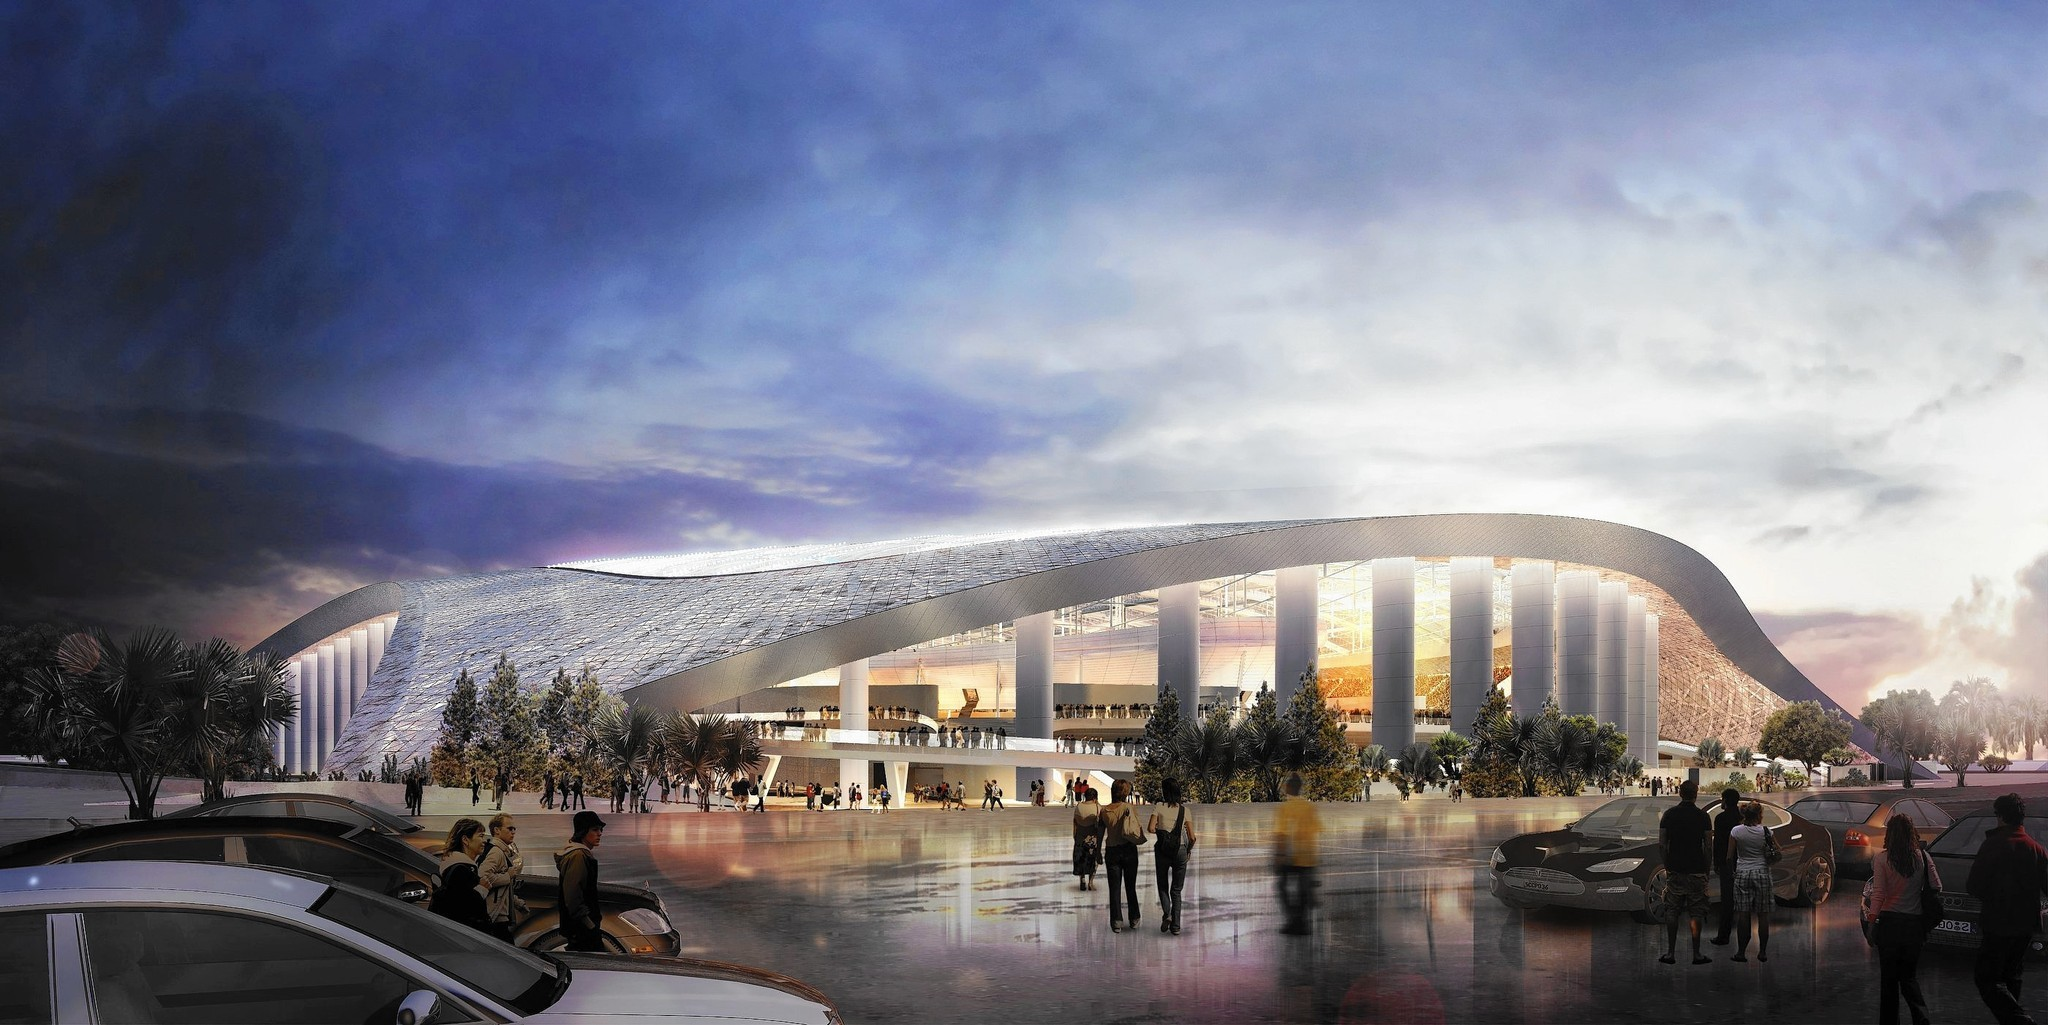 la-et-cm-inglewood-stadium-design-20160208